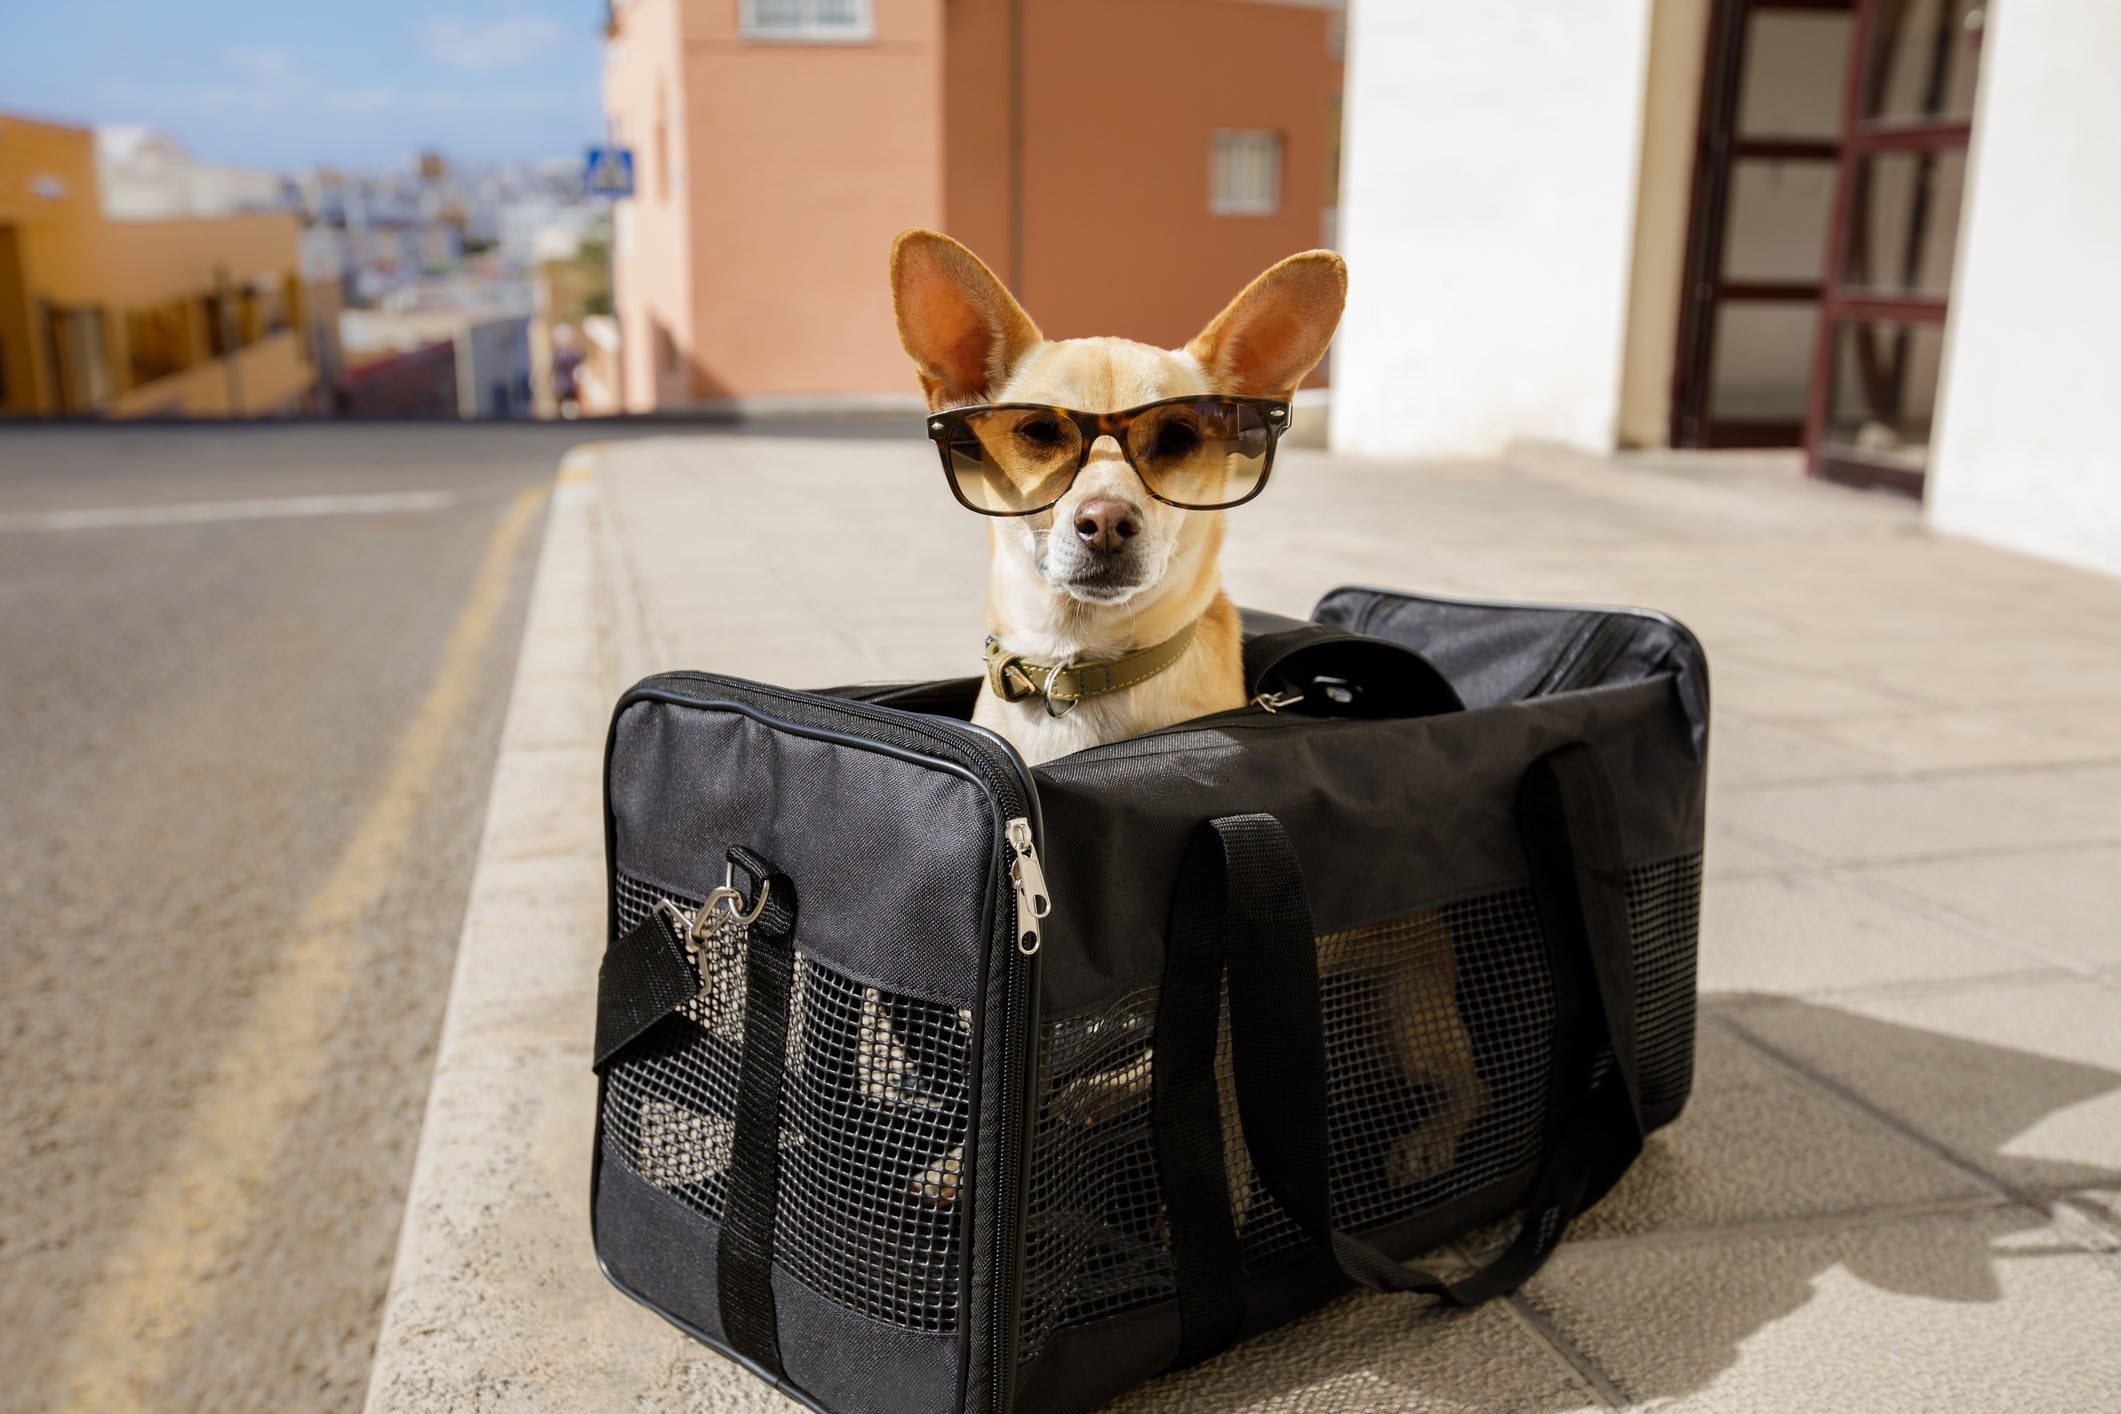 The most expensive plane ticket I've ever purchased was a $14k rescue mission for my dog Watson